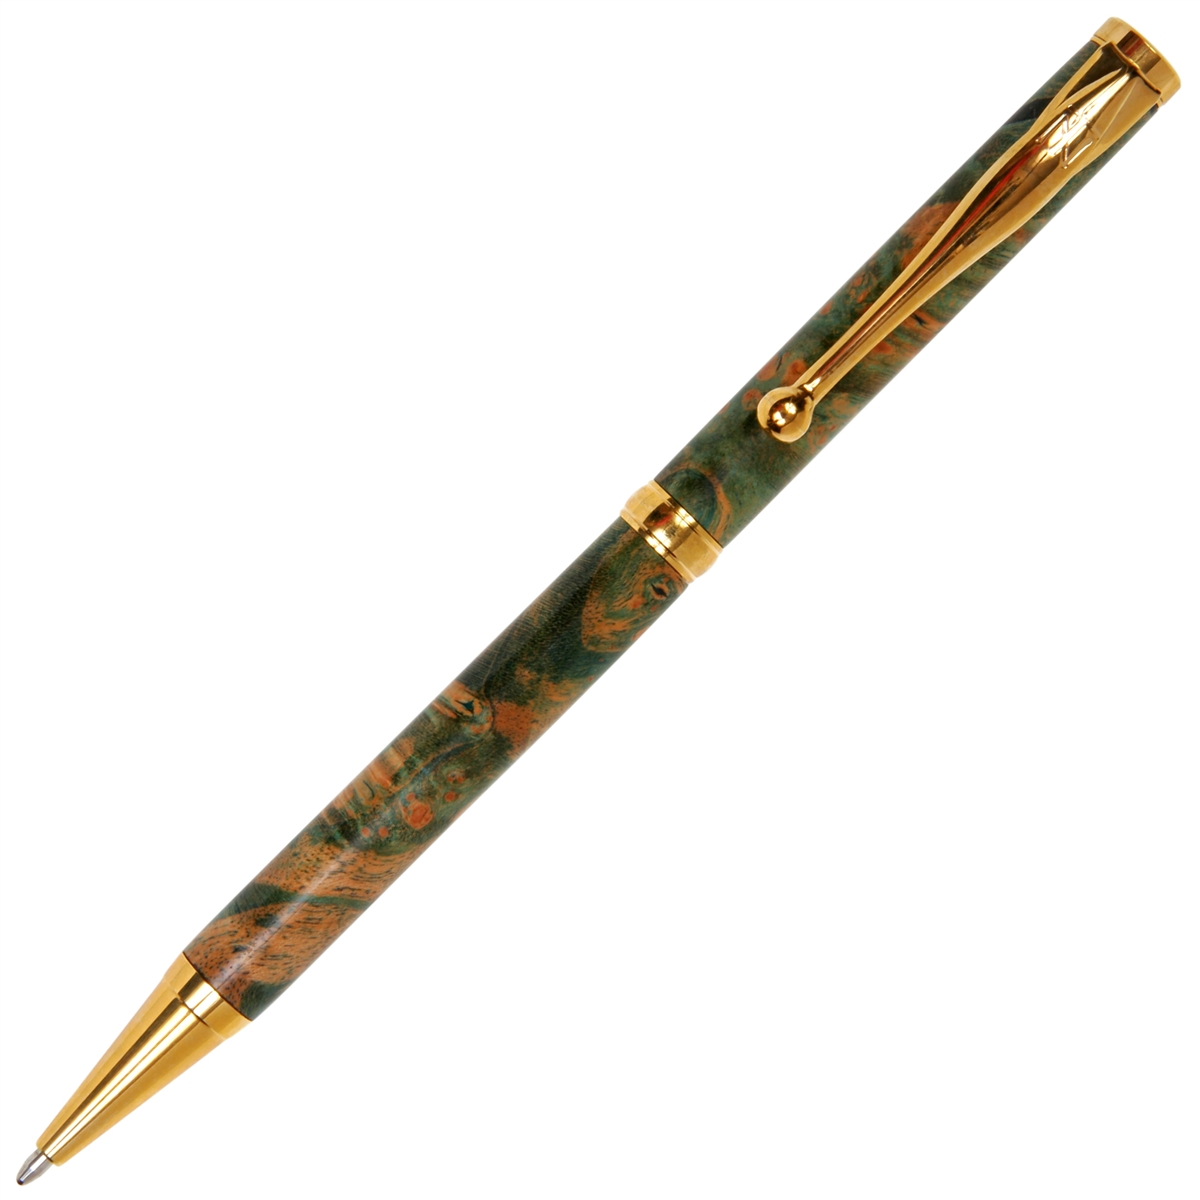 Slimline Twist Pen - Green Maple Burl